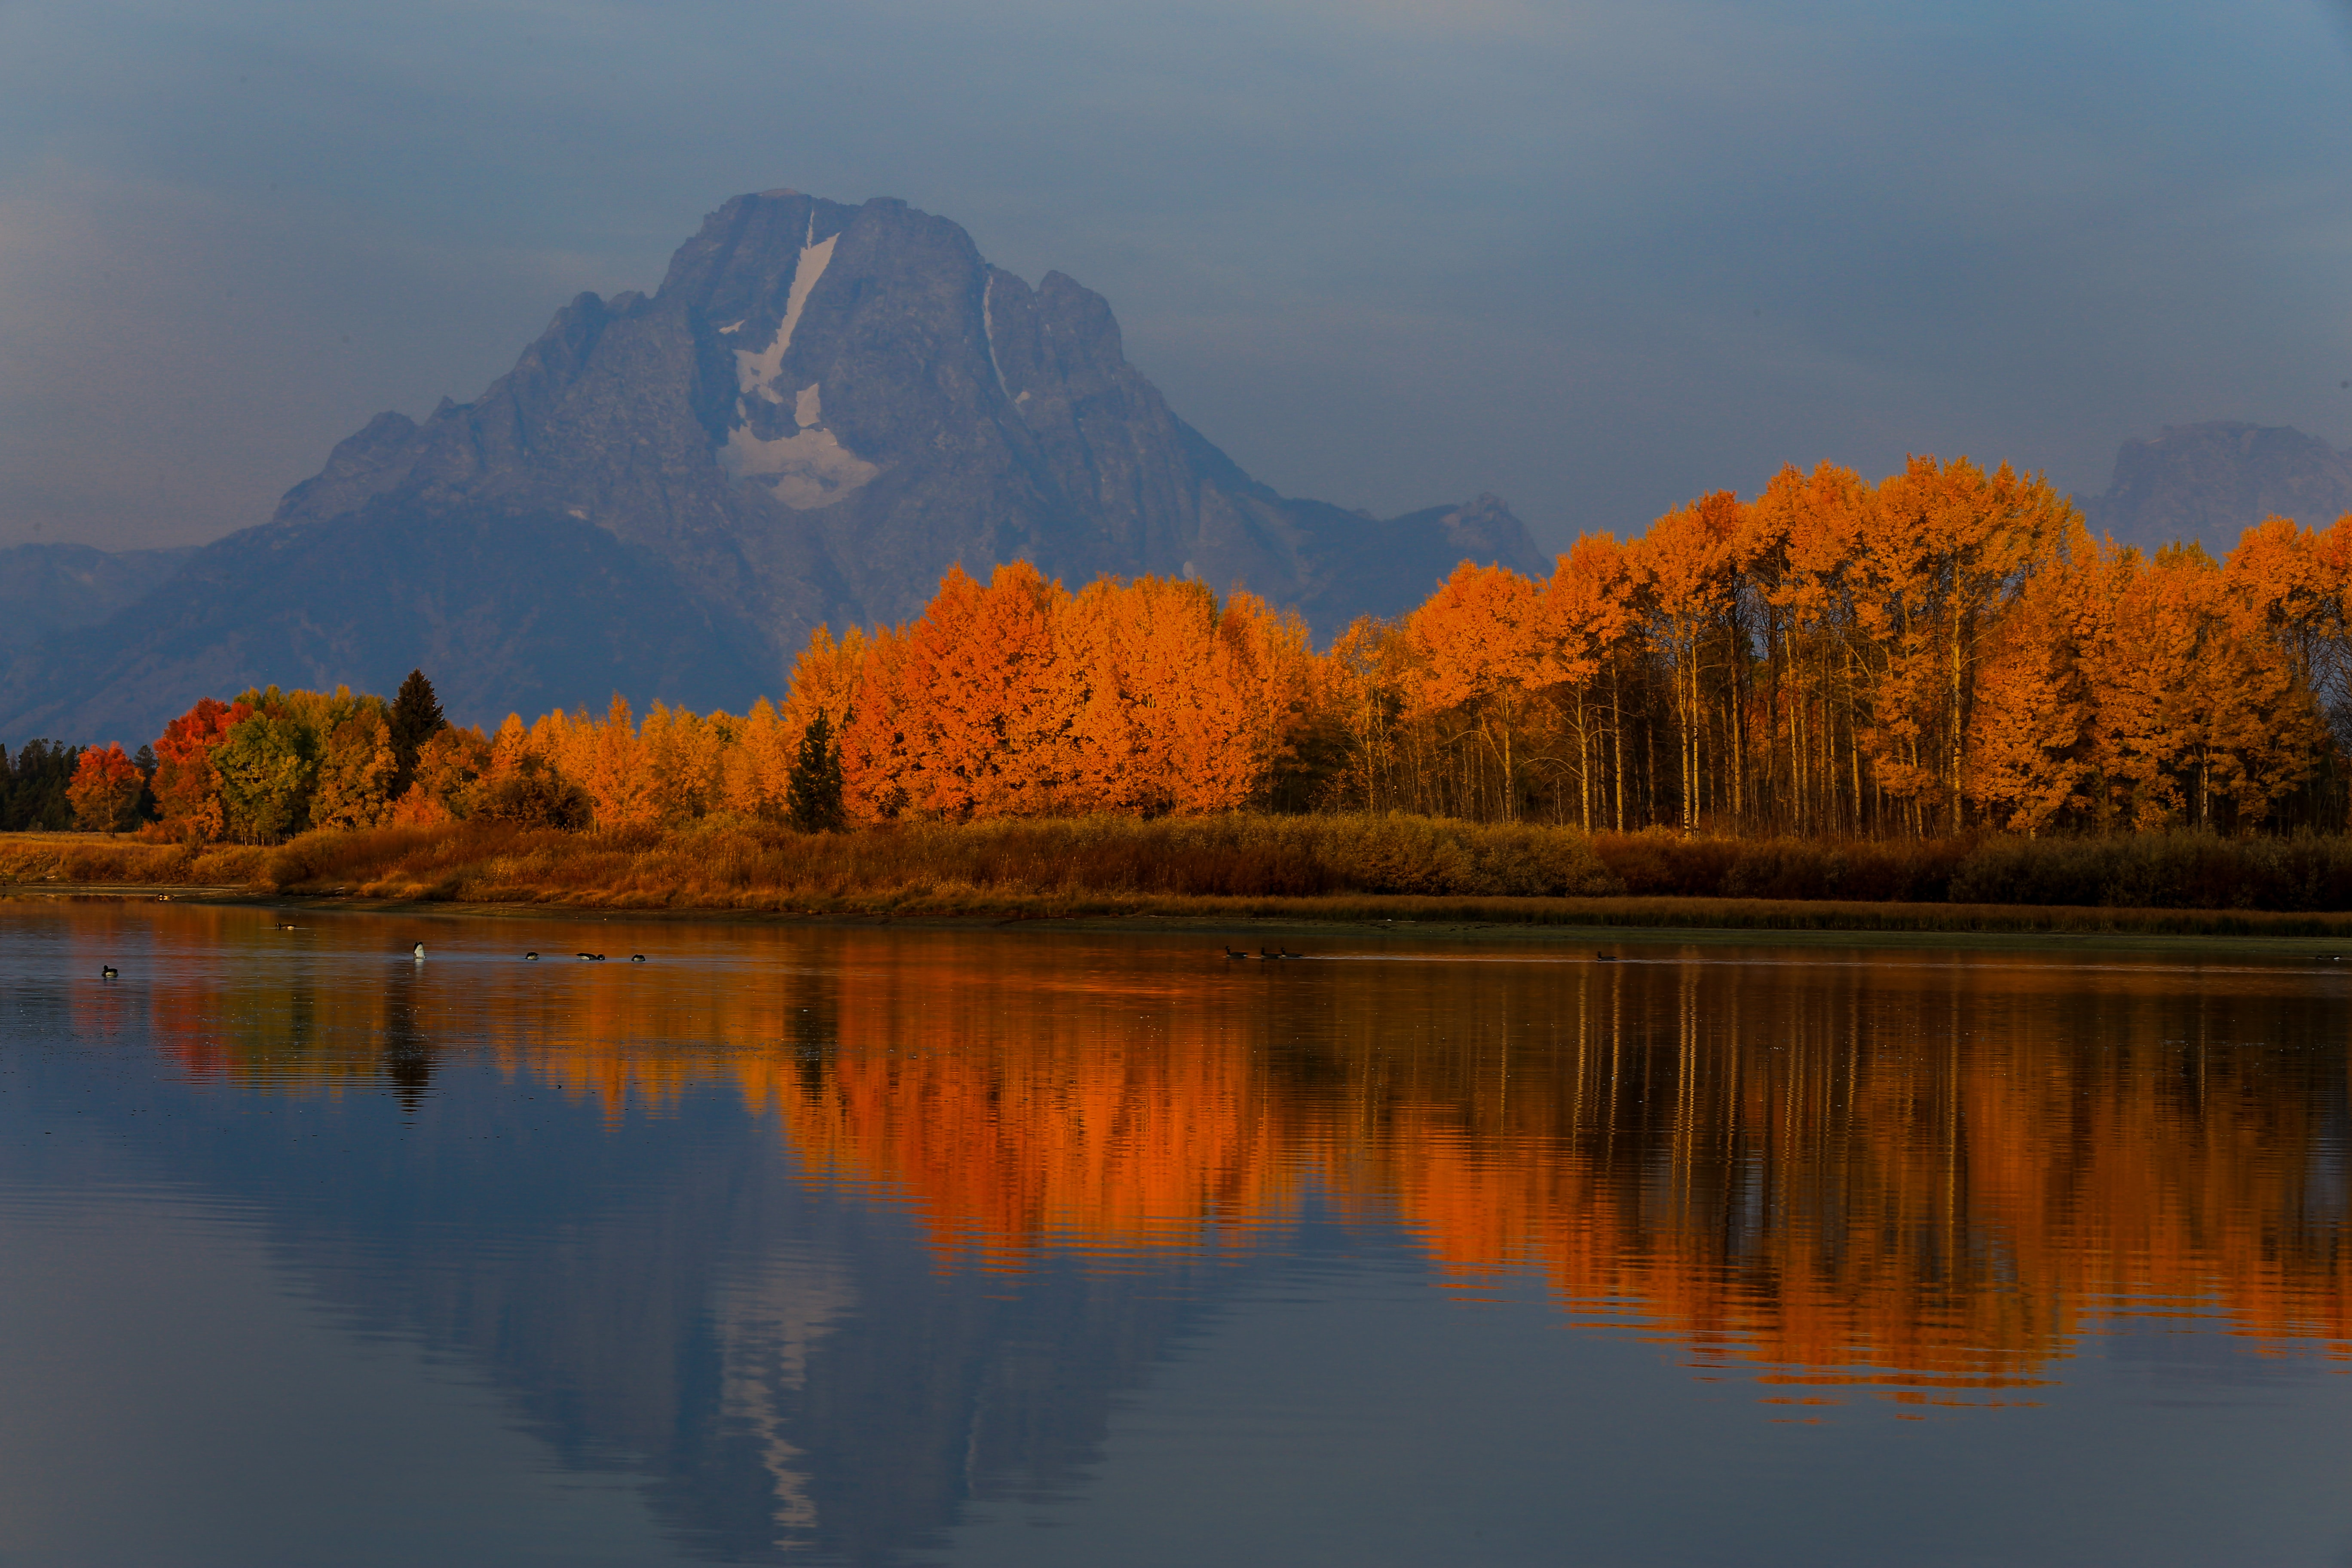 landscape photography of mountains and lake